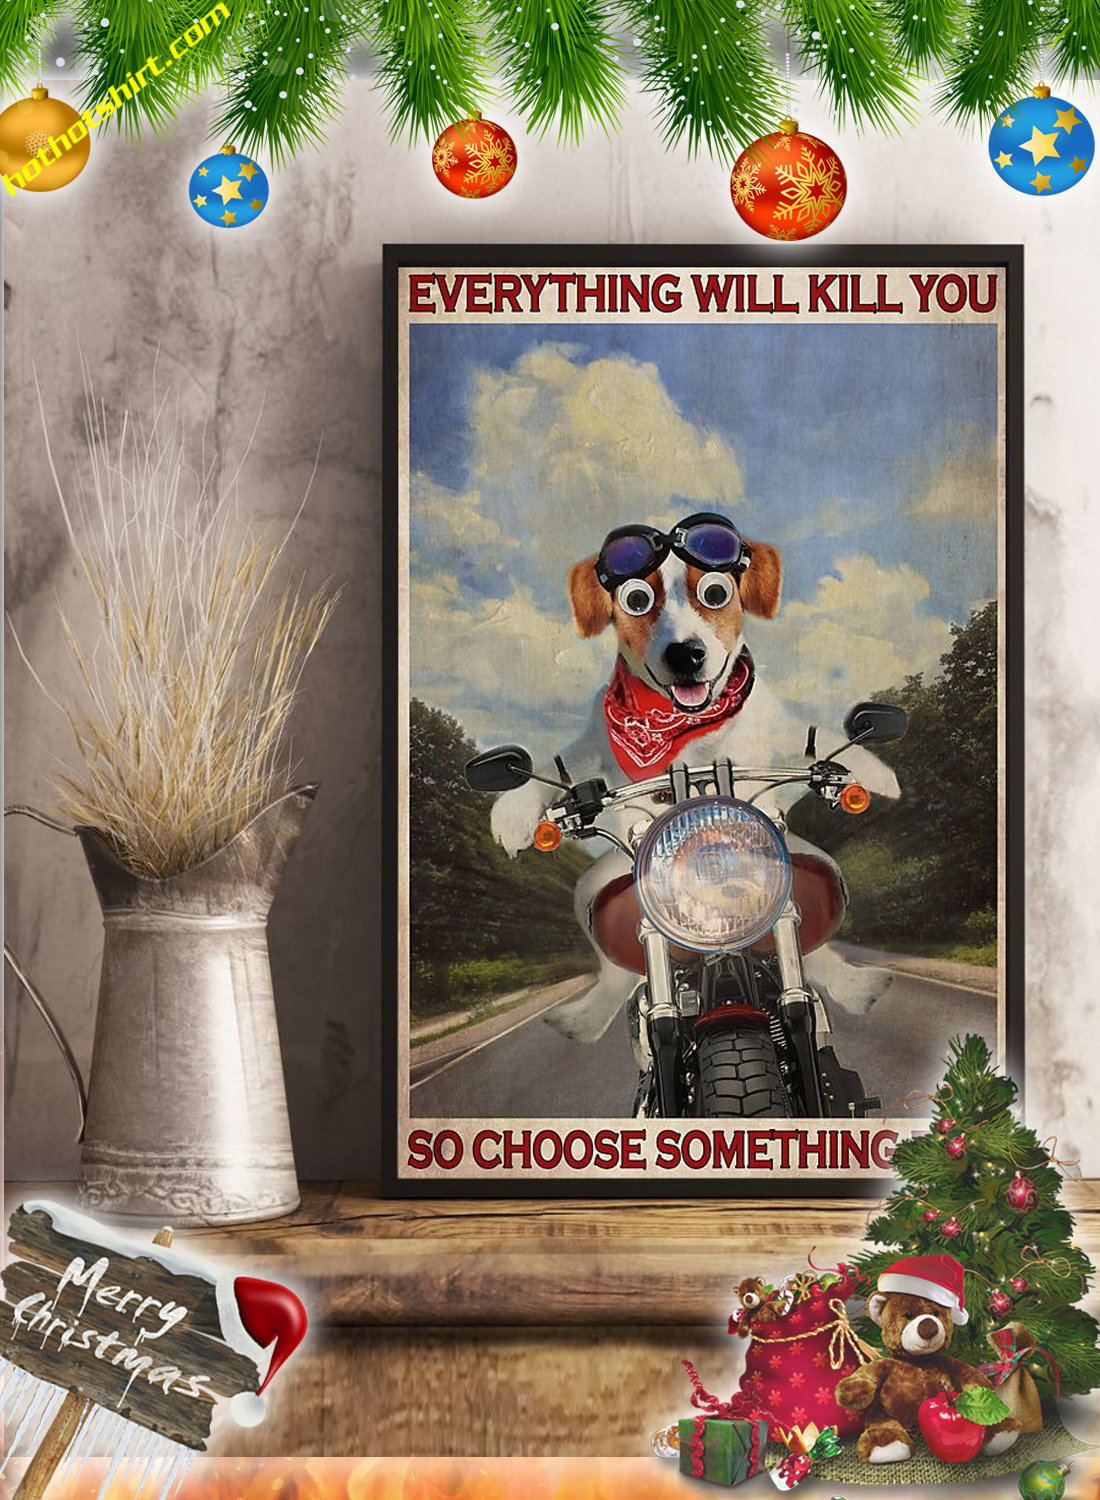 Jack Russel Motorcycle Everything will kill you so choose something fun poster 3